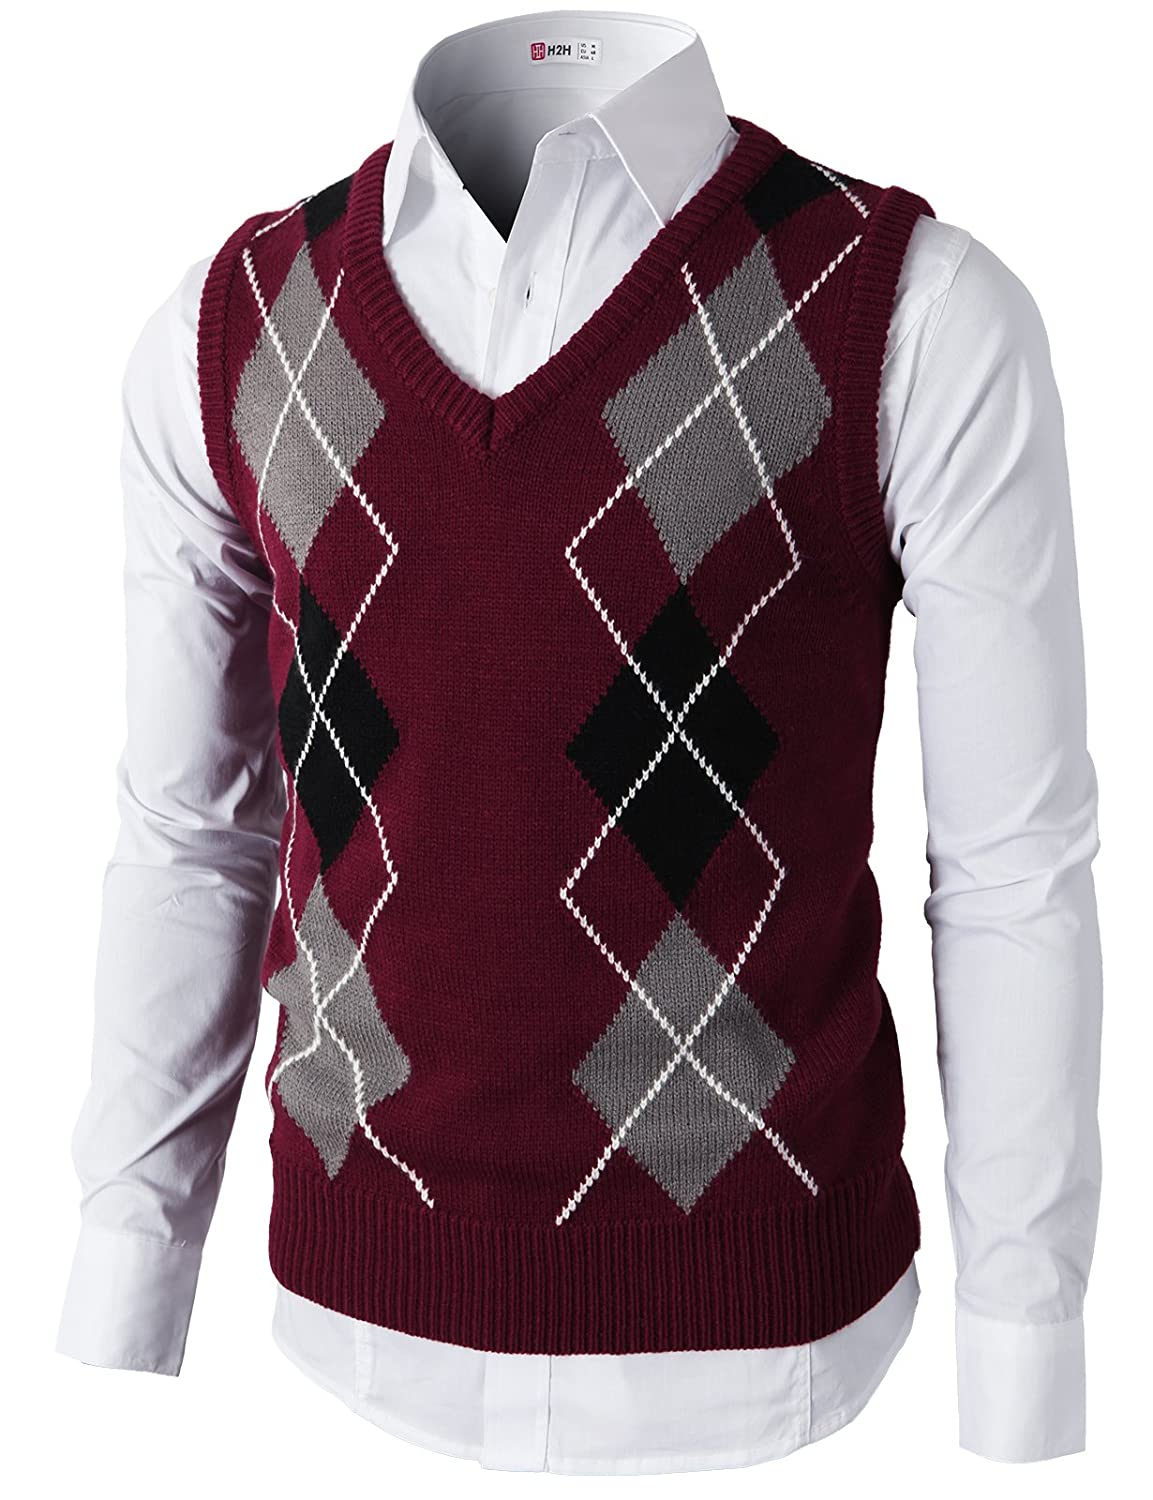 Men's Vintage Inspired Vests Argyle V-Neck Golf Sweater Vest Of Various Colors $29.70 AT vintagedancer.com